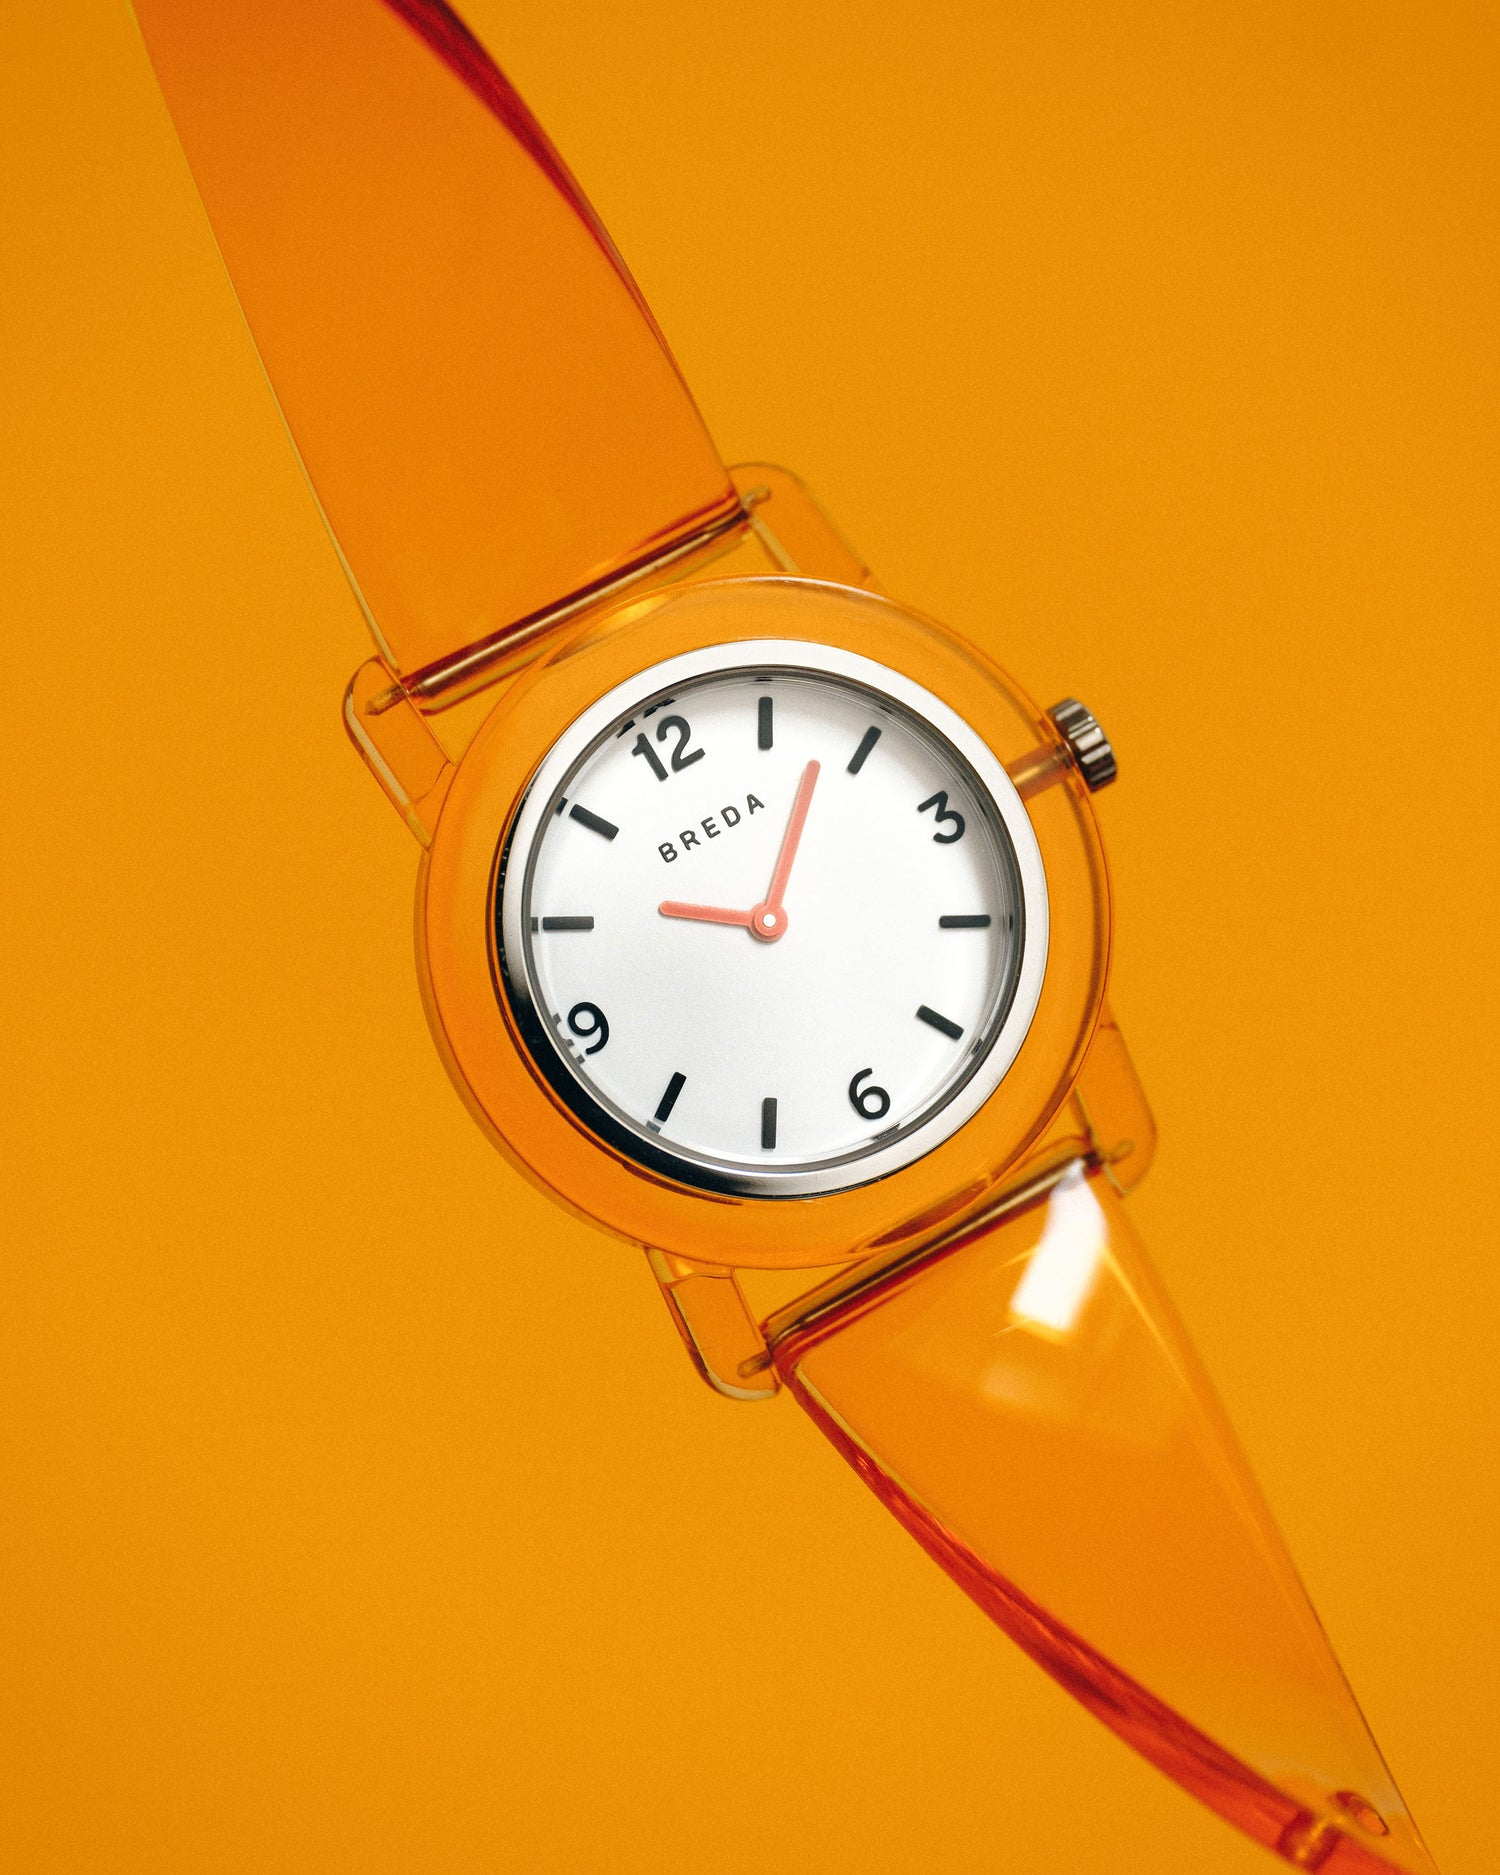 breda-play-1742a-silver-orange-plastic-watch-studio-03